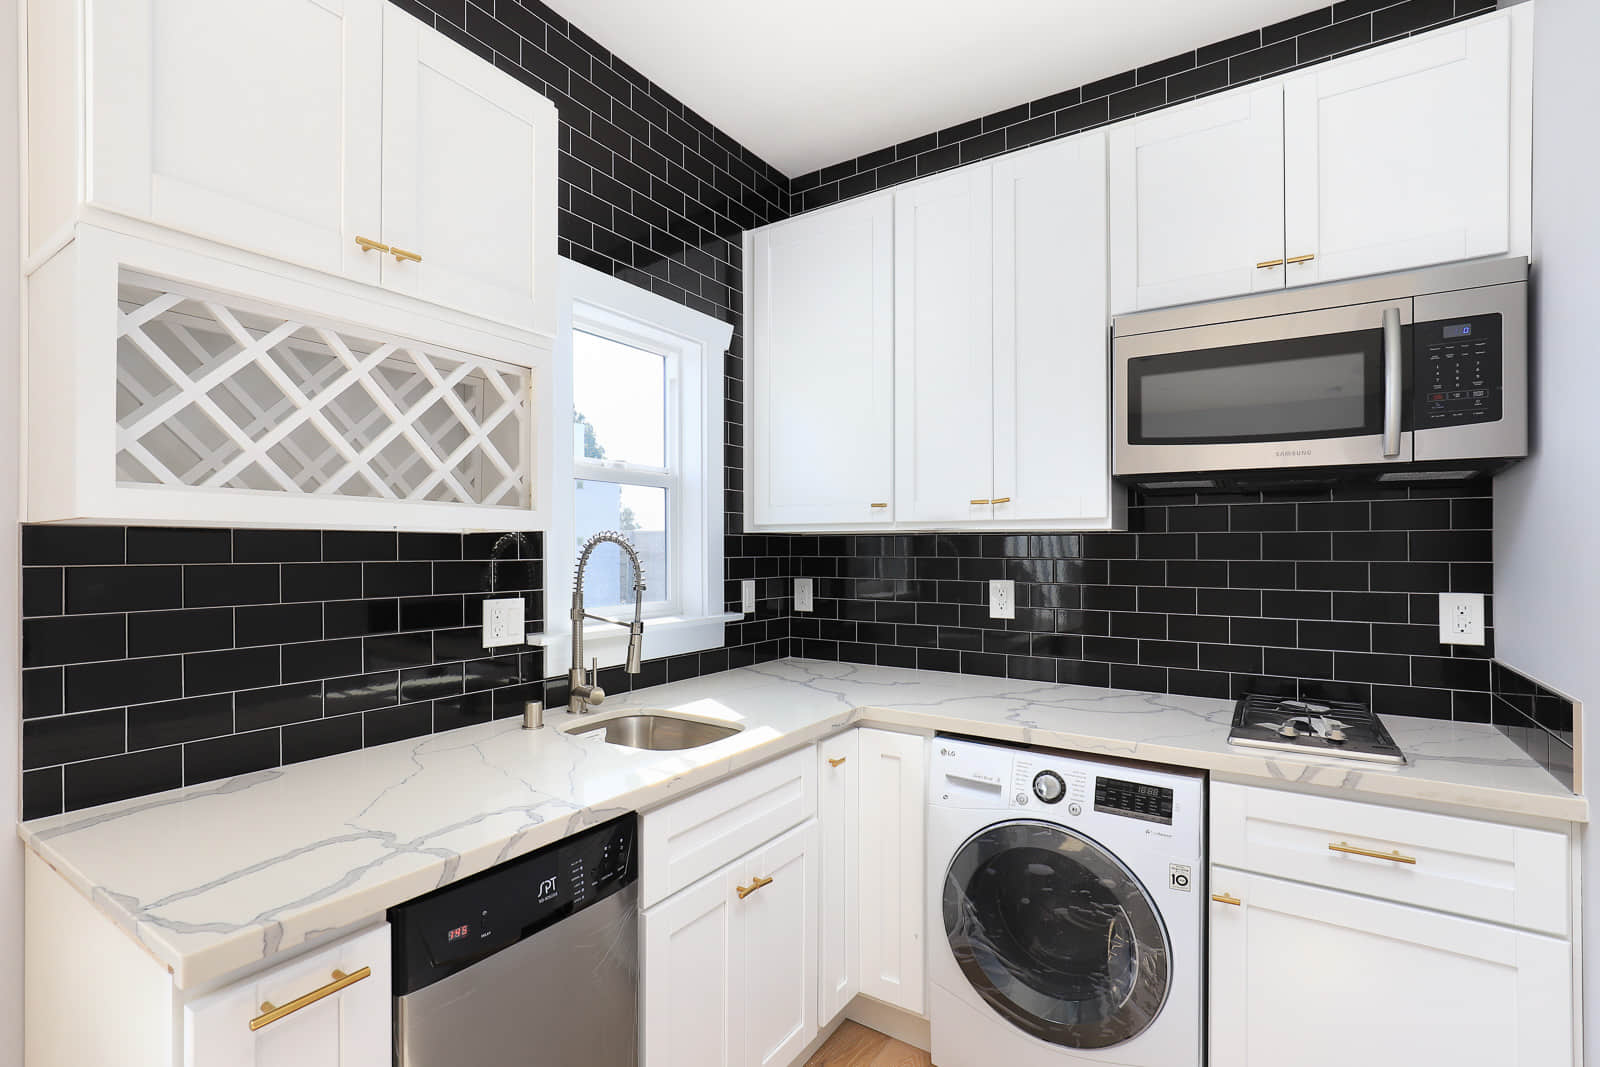 Dreamy NYC Studio Living meets LA Concept   Pet & Bicycle Friendly!   Newly Renovated 1920's Walk Up Building   Blocks from Sunset/Vermont Metro Station